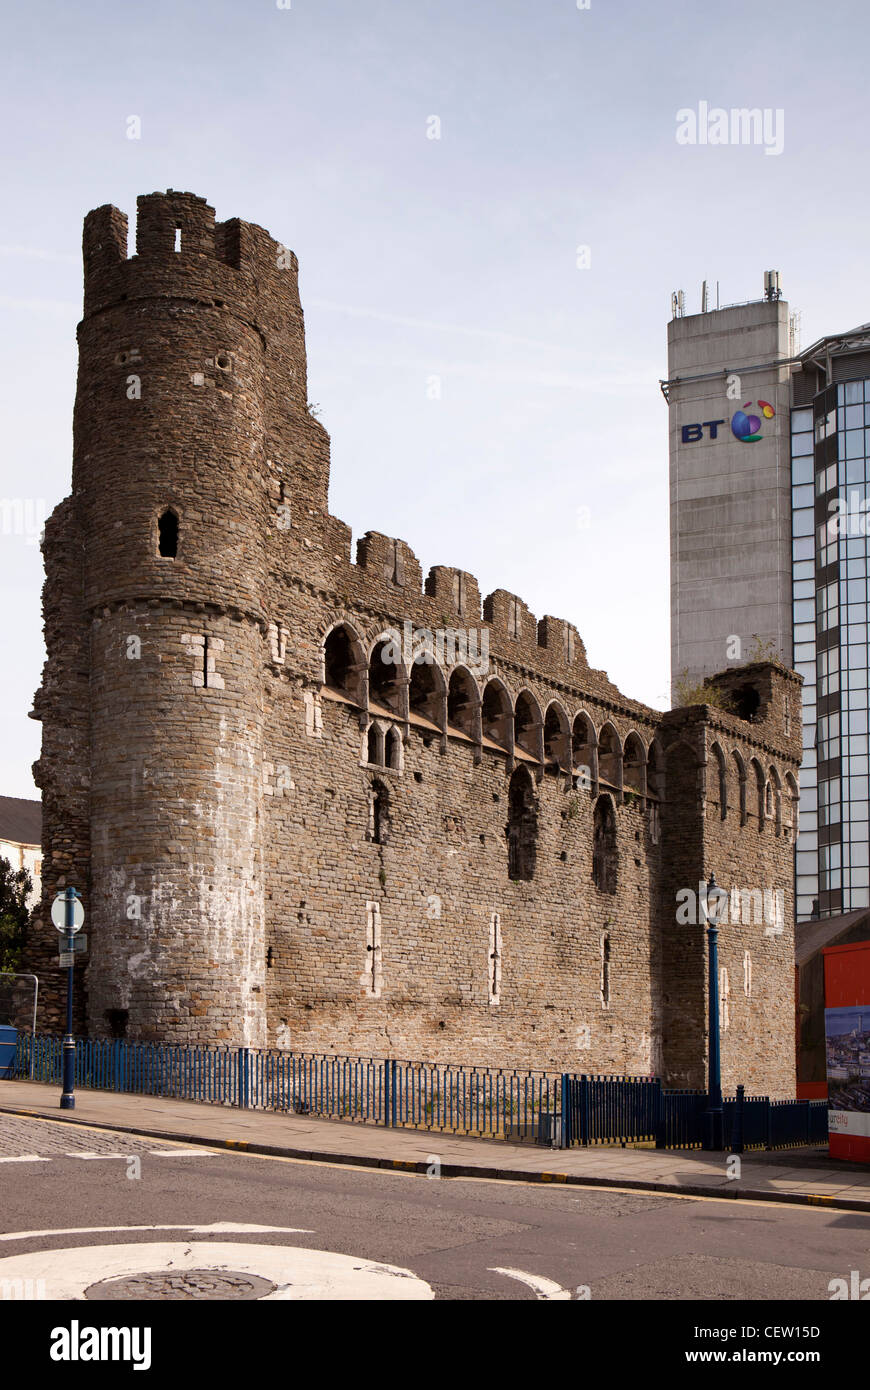 UK, Wales, Swansea, castle ruins in city centre - Stock Image